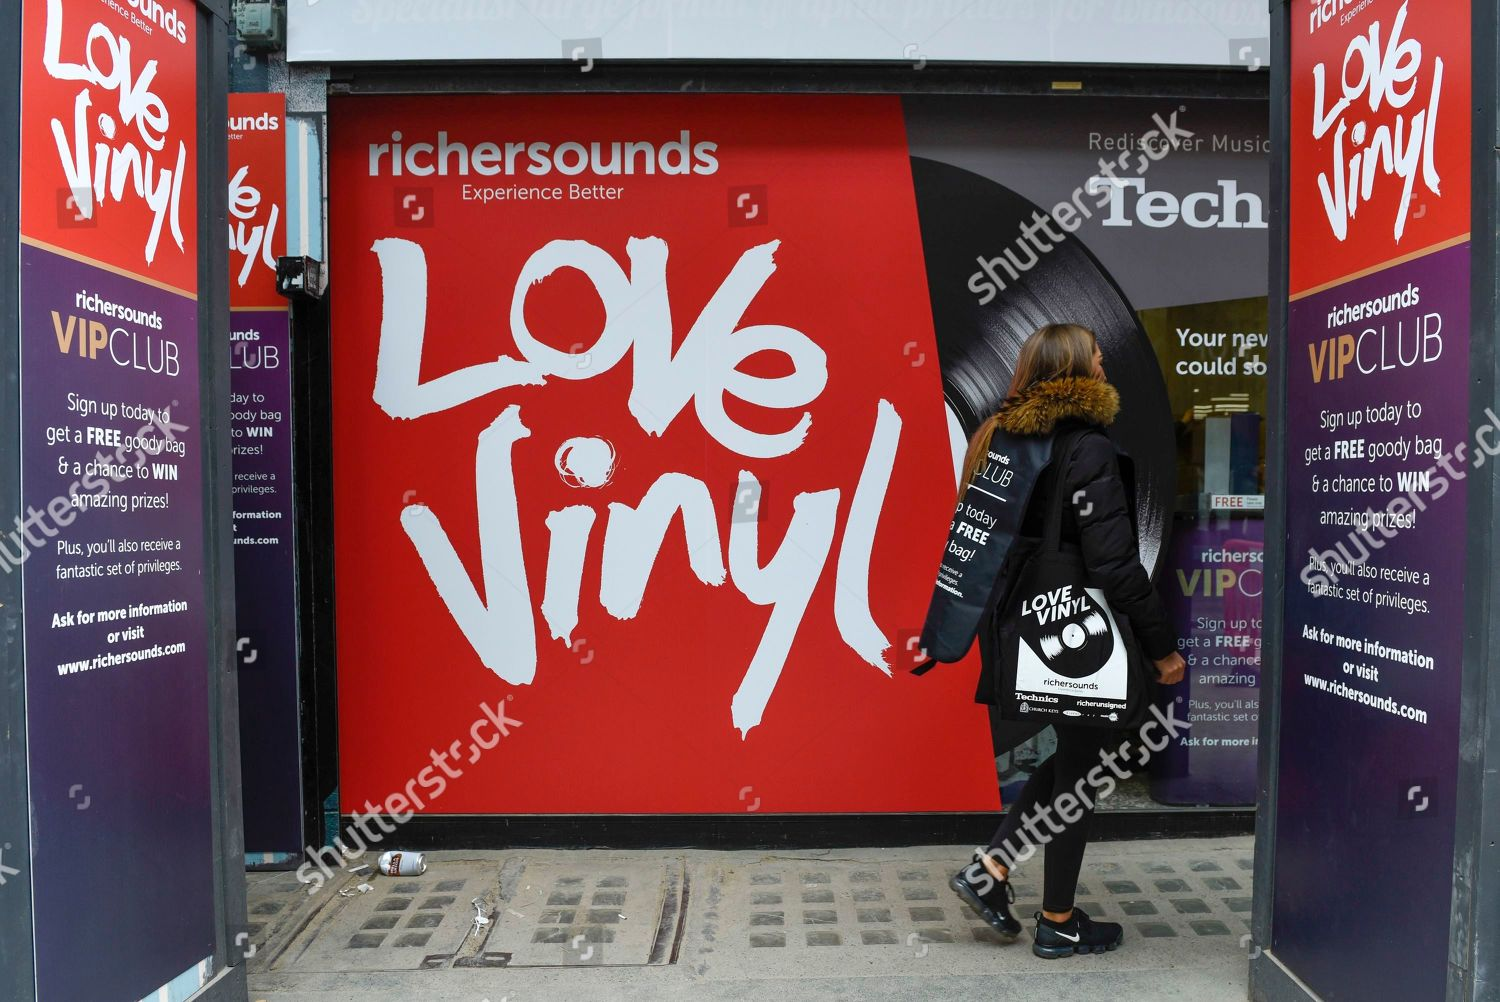 Vinyl music promotion Analogue music fans visit Editorial Stock